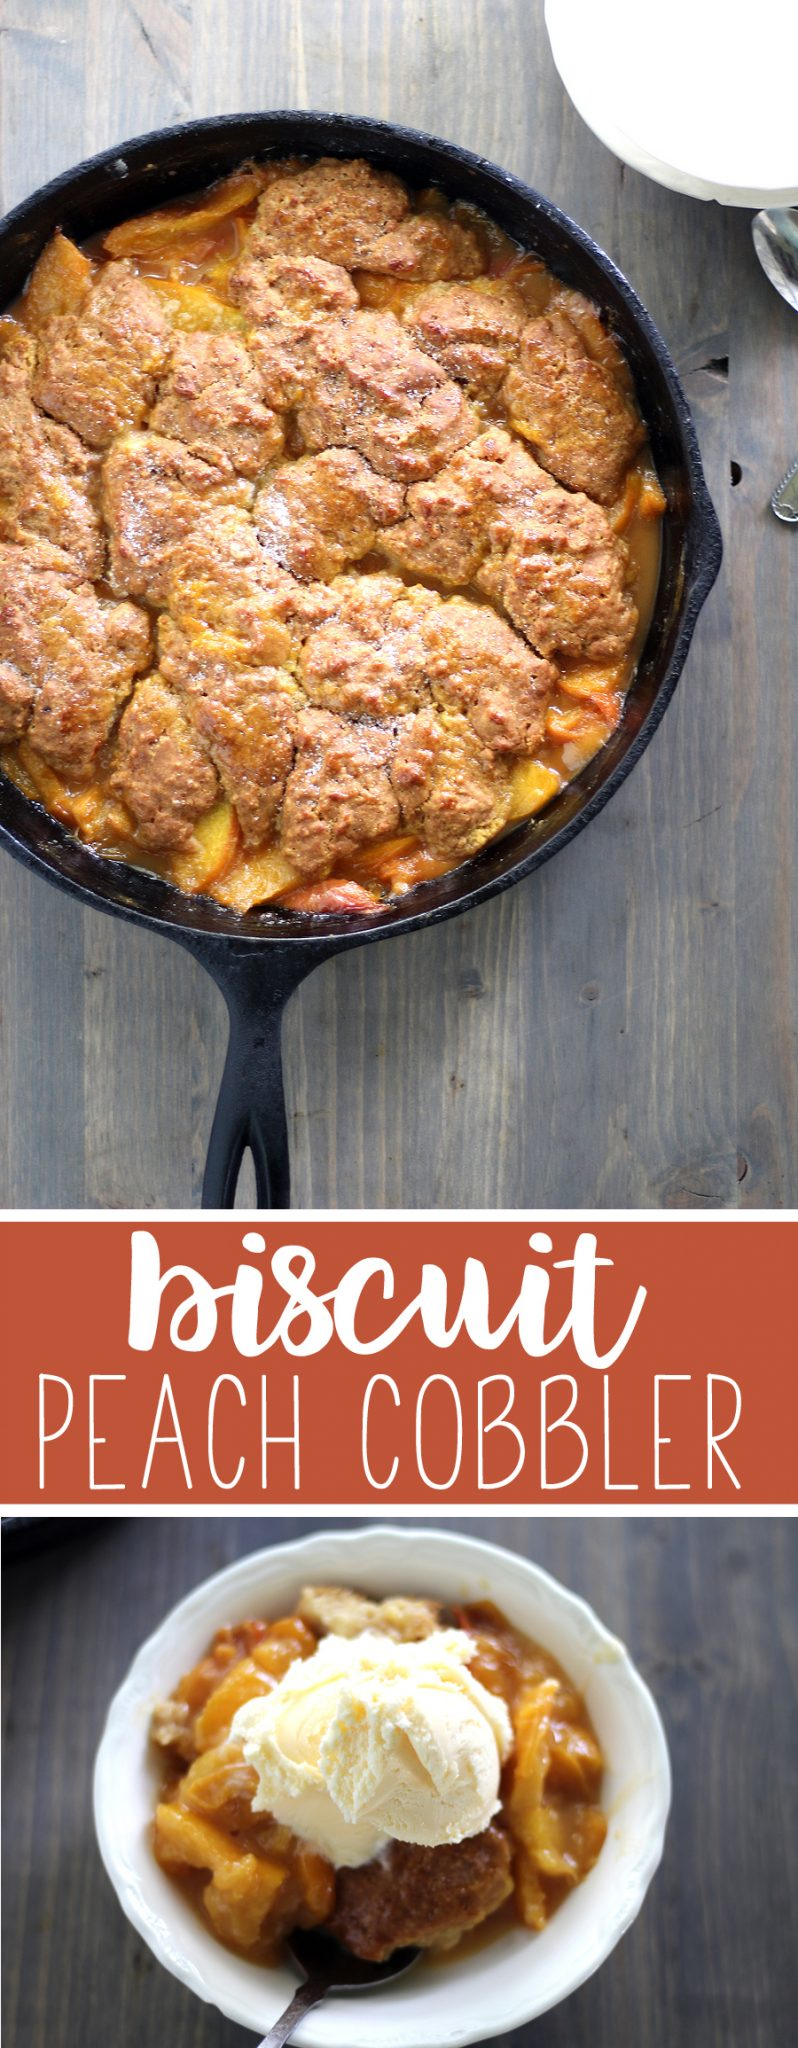 The taste of bright and sweet fresh peaches with a slightly salty-savory biscuit topping is a step away from heaven. Buttery and crumbly, a biscuit is happiest sitting on top of peaches. #peachcobblerrecipe